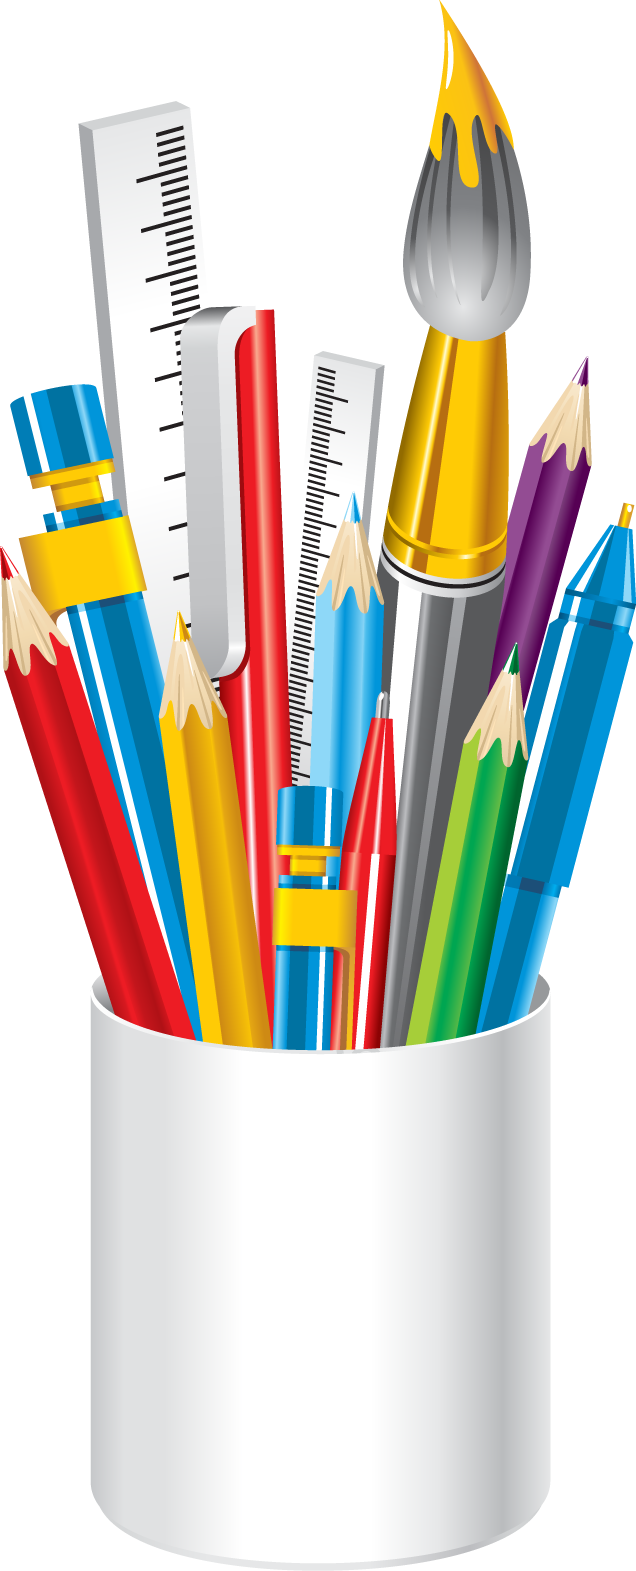 Picture Of School Supplies - ClipArt Best